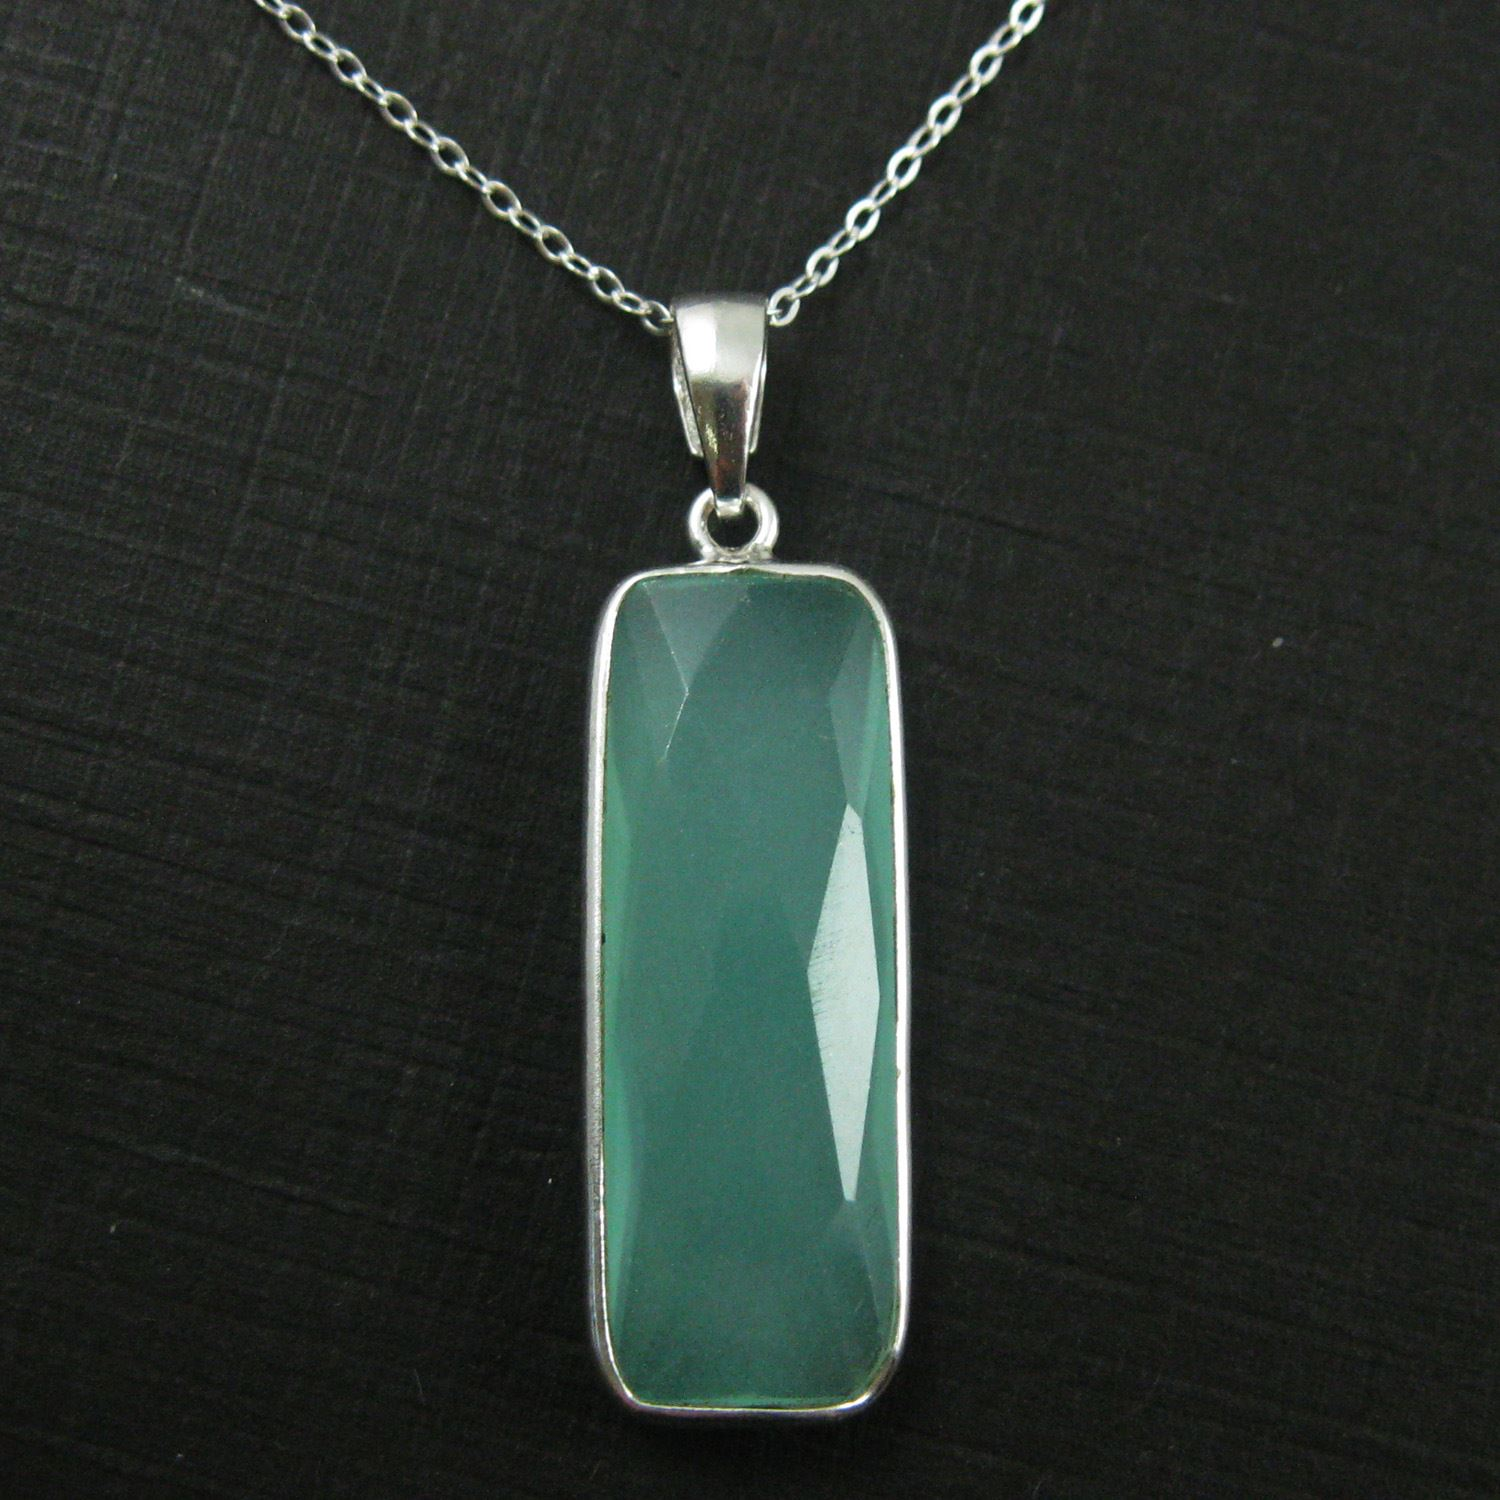 Bezel Gemstone Pendant with Bail - Sterling Silver Rectangle Gem Pendant - Ready for Necklace - 40mm - Peru Chalcedony